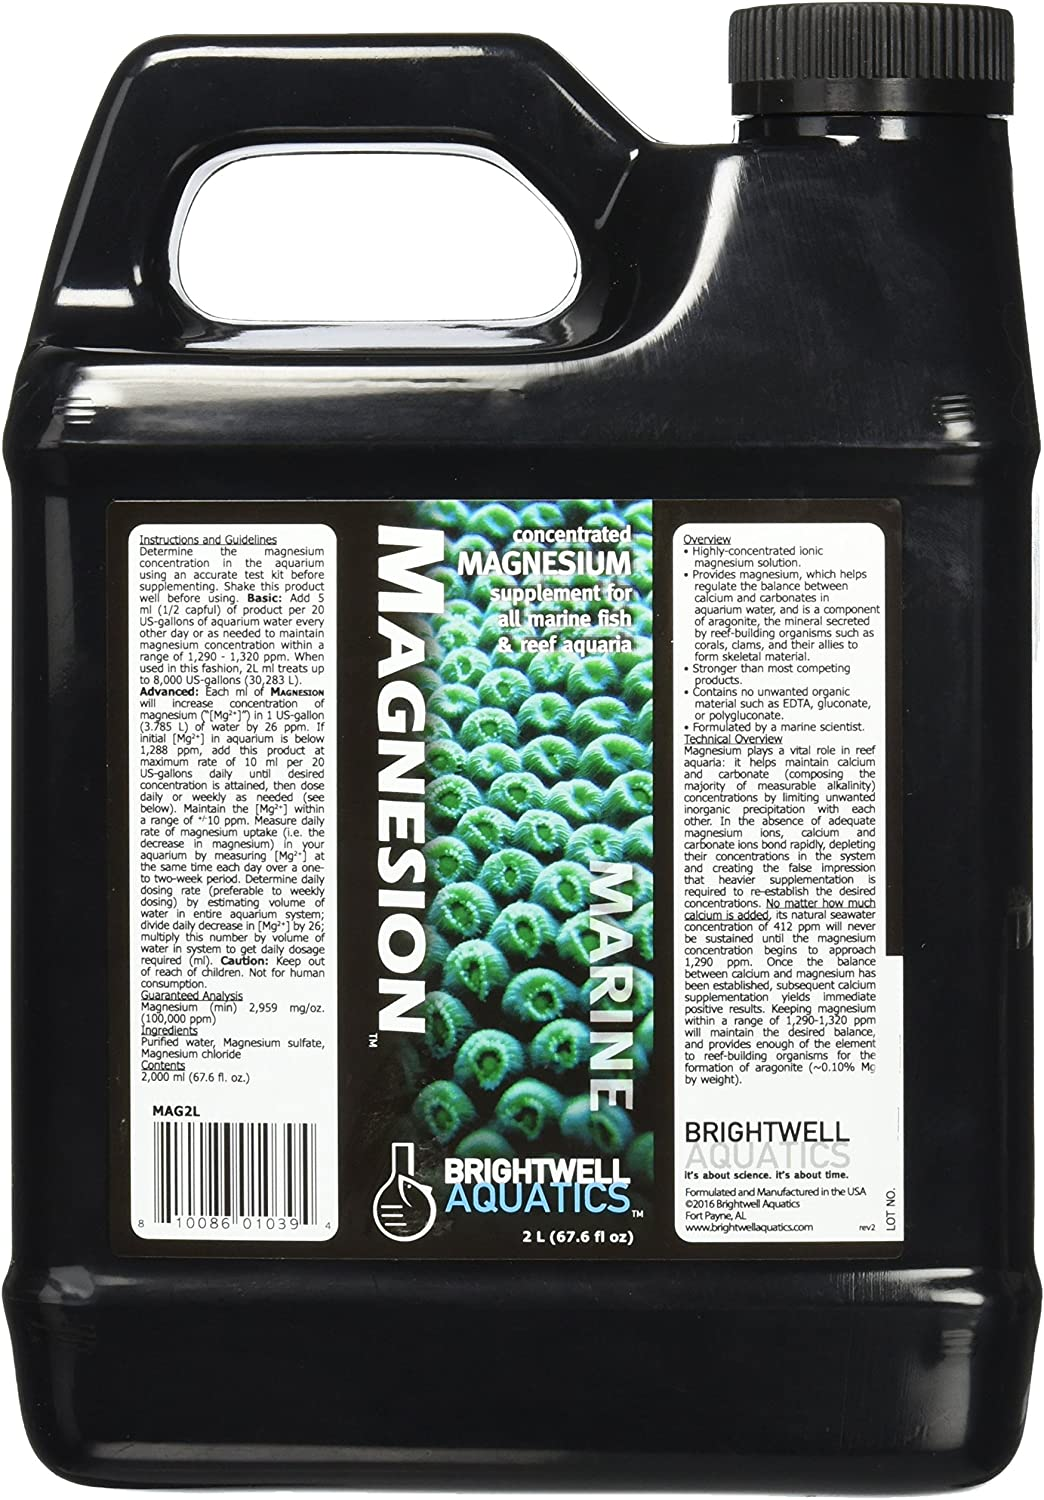 Brightwell Aquatics Magnesion - Concentrated Magnesium Supplement for Reef